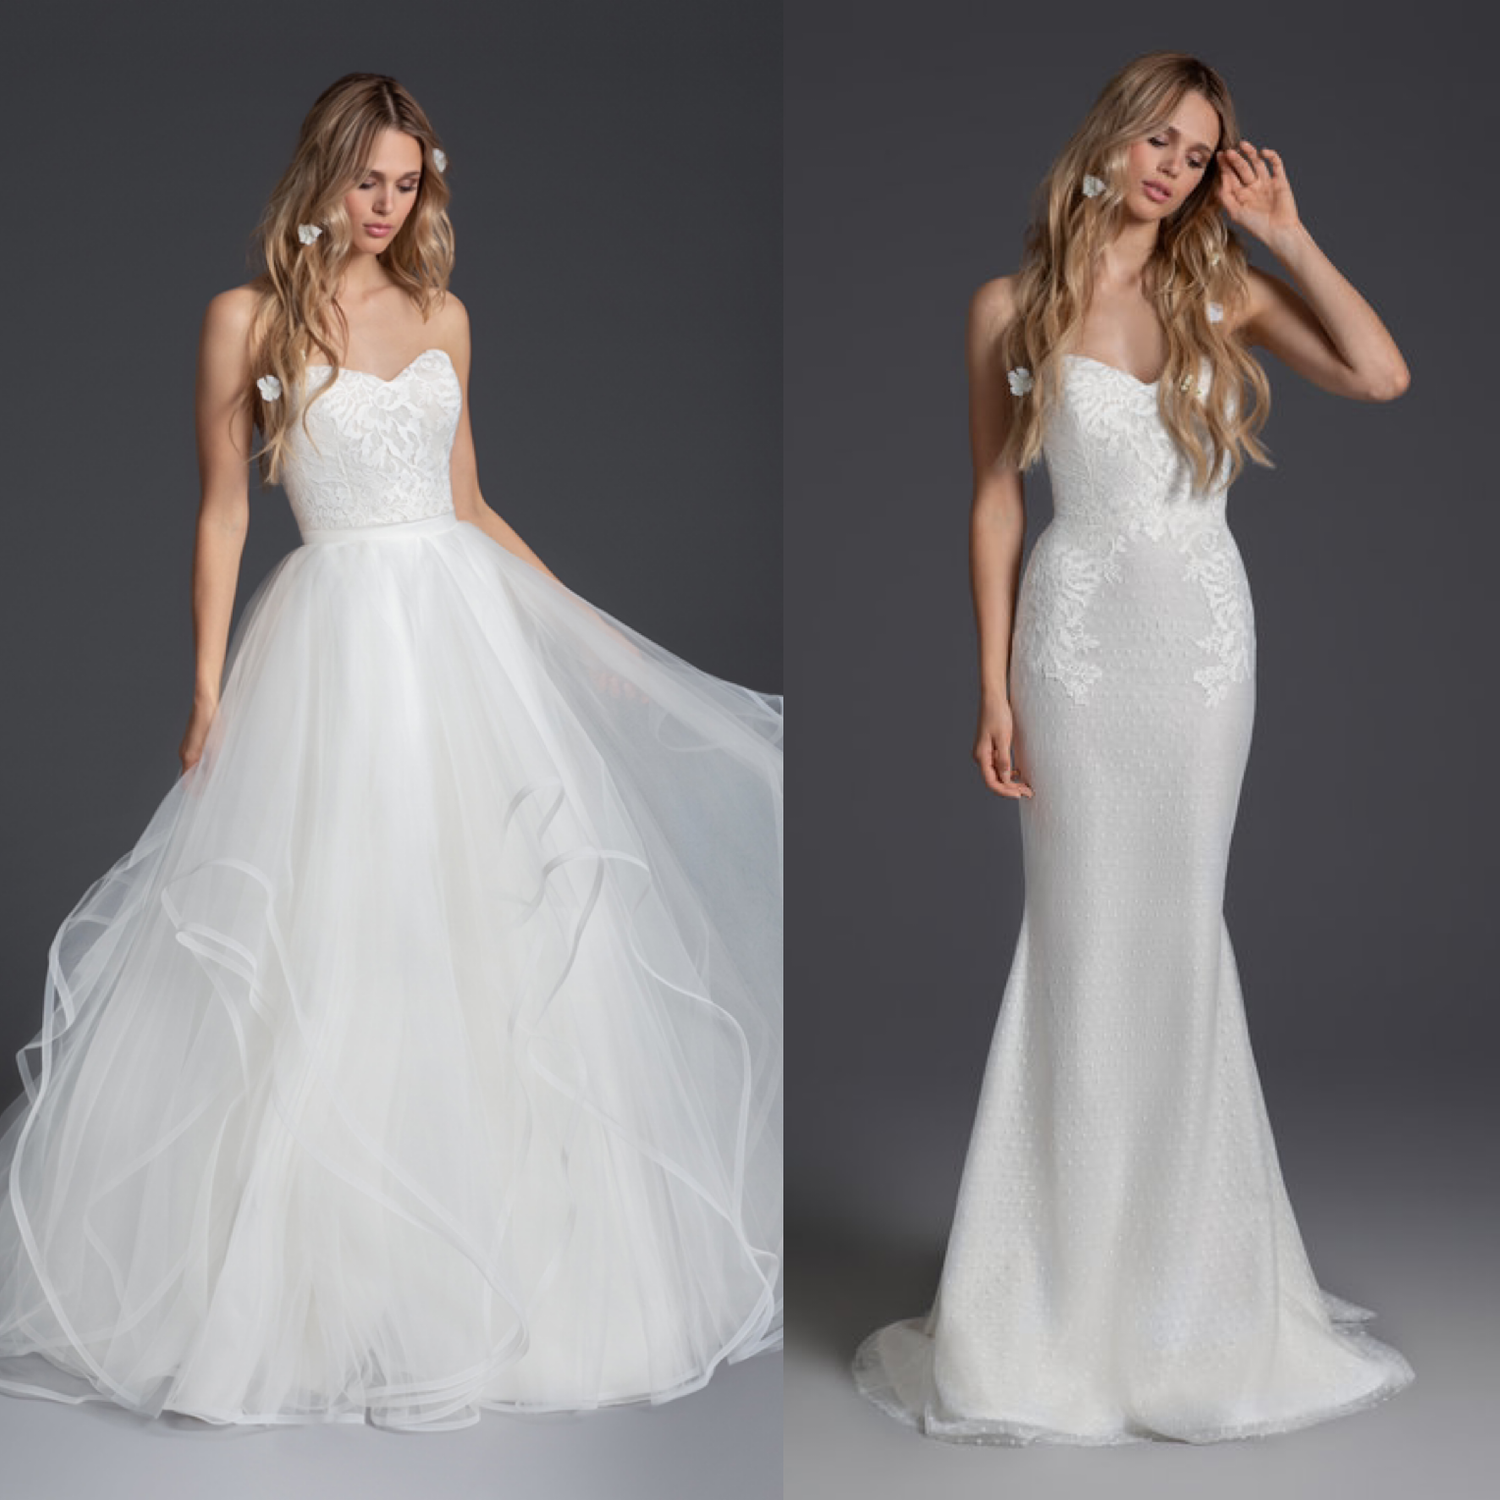 Wedding Dresses With Removable Skirts : Two In One Dresses ...